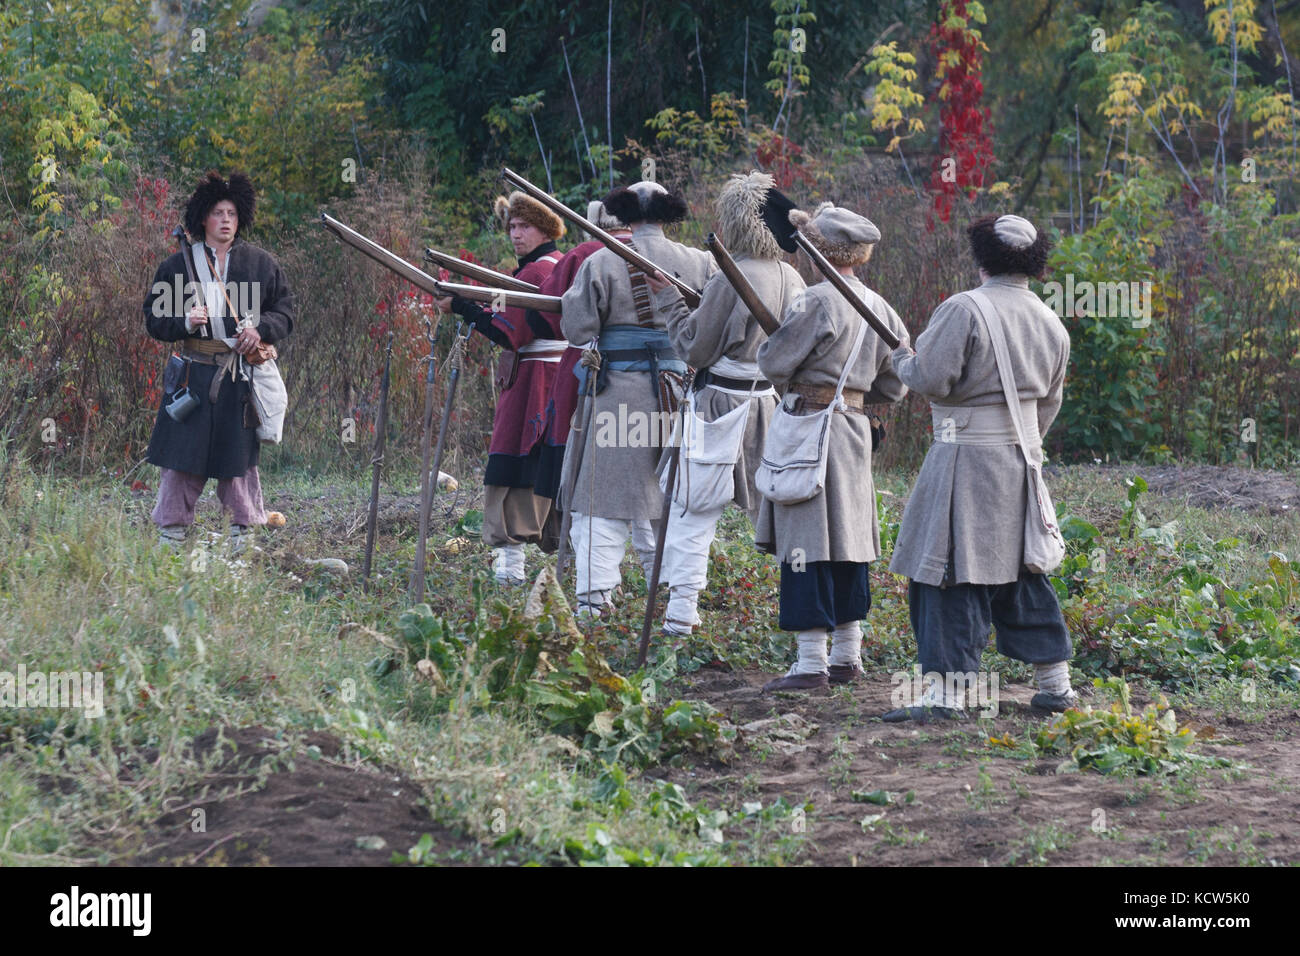 KAMYANETS-PODILSKY, UKRAINE - OCTOBER 3, 2009: Members of history club wear historical uniform 17 century during - Stock Image